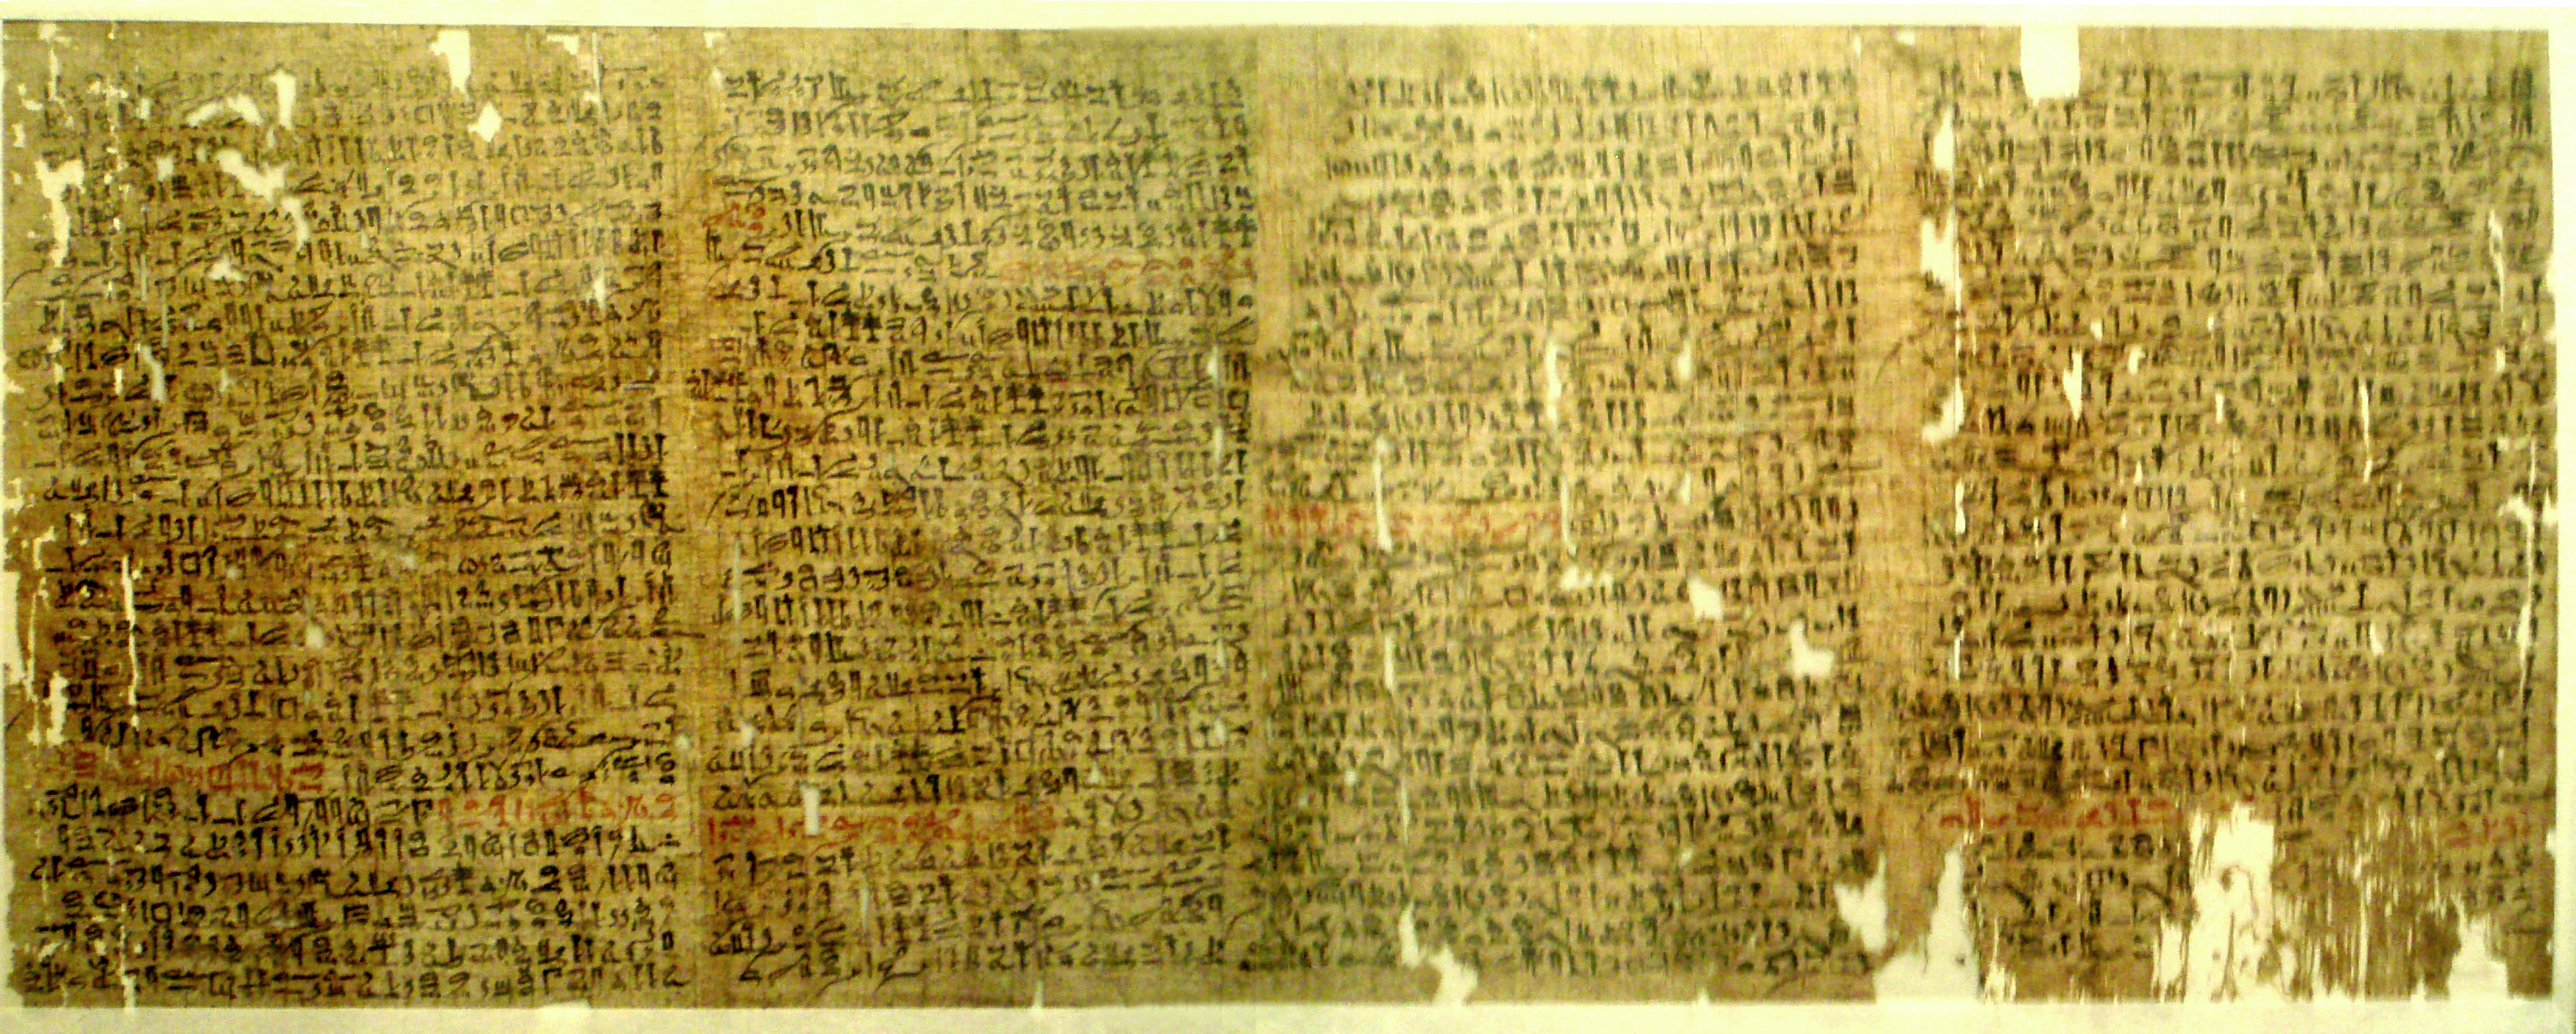 research paper on ancient egyptian medicine Below is an essay on medical papyrus the history of egyptian medicine from anti essays, your source for research papers, essays, and term paper examples medical papyrus the history of egyptian medicine.